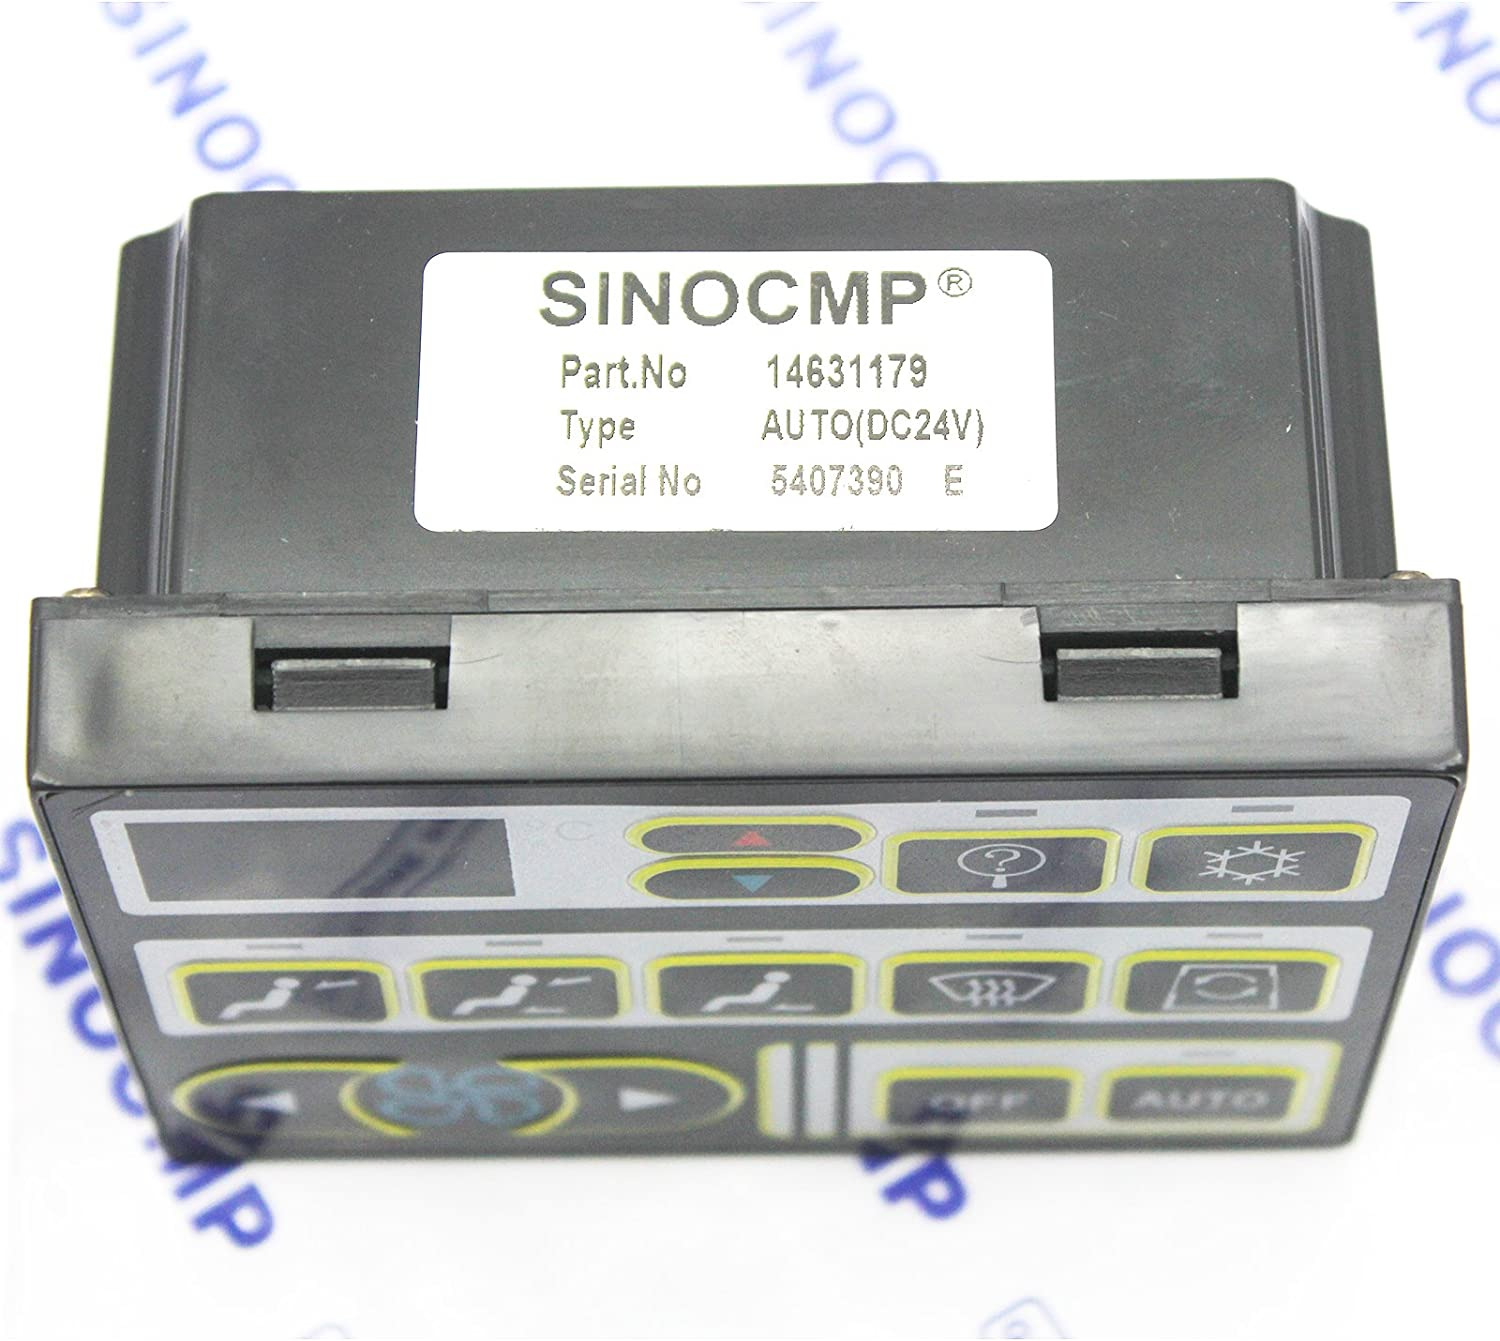 SINOCMP Air Control Panel Switch Excavator 24V Air Conditioner Controller VOE 14631179 VOE14631179 for Volvo Excavator Parts EC210 EC210B EC290